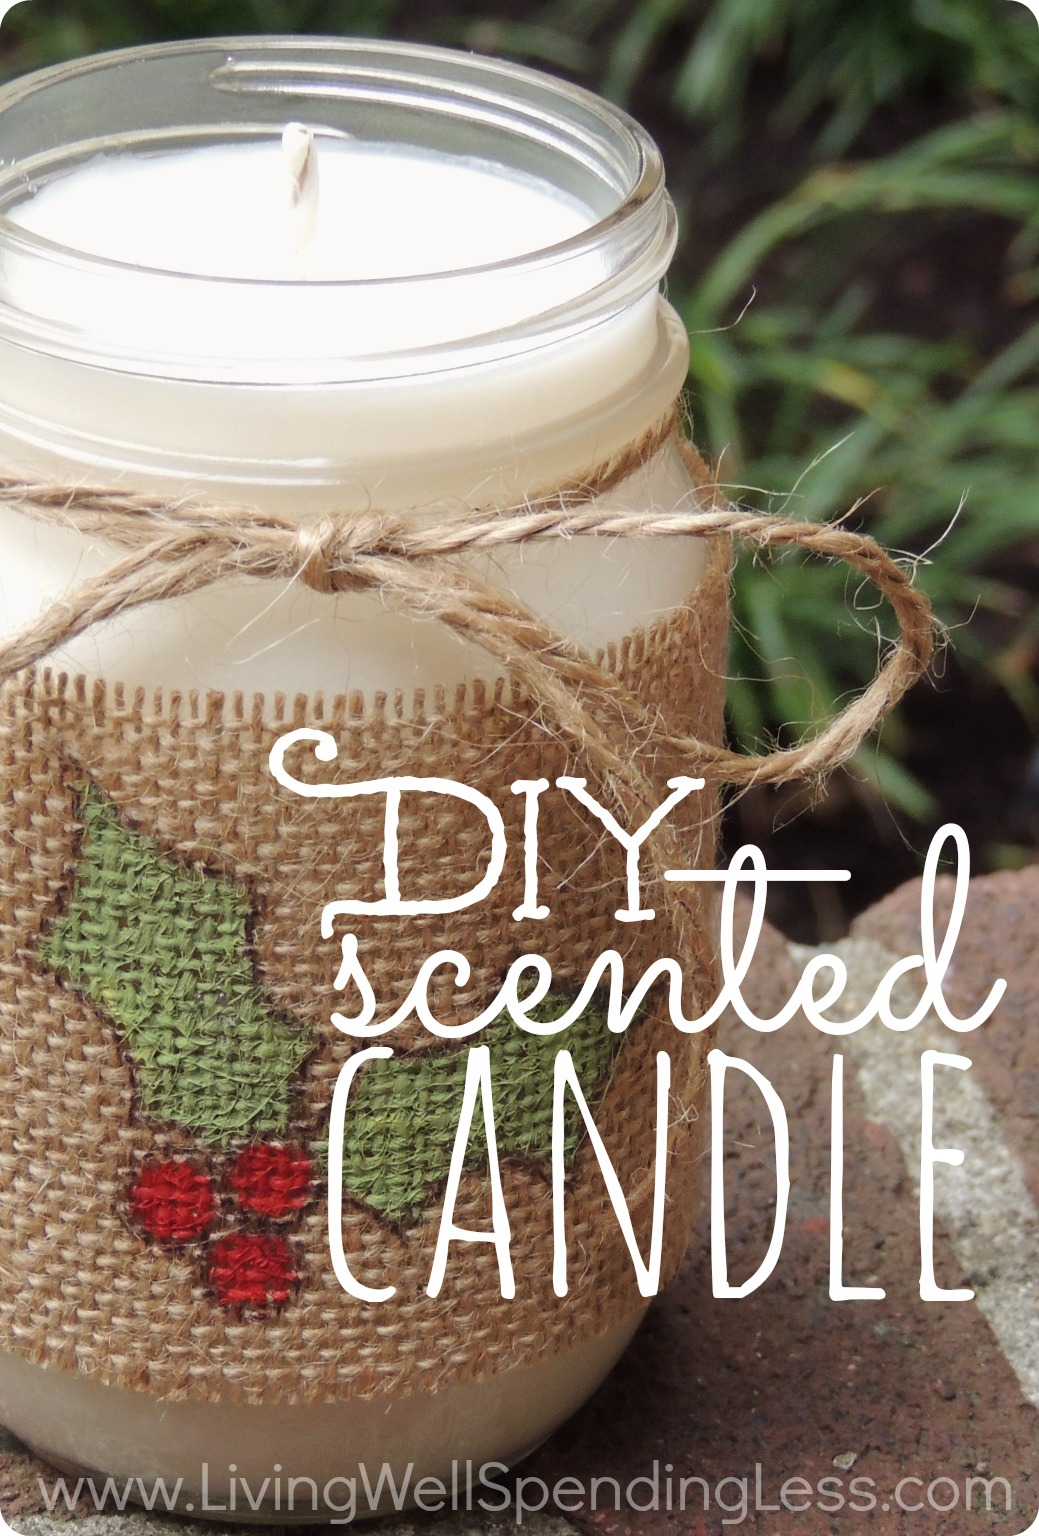 Diy scented candle in a jar living well spending less this sweet diy scented candle in a mason jar is a great gift for anyone on solutioingenieria Gallery